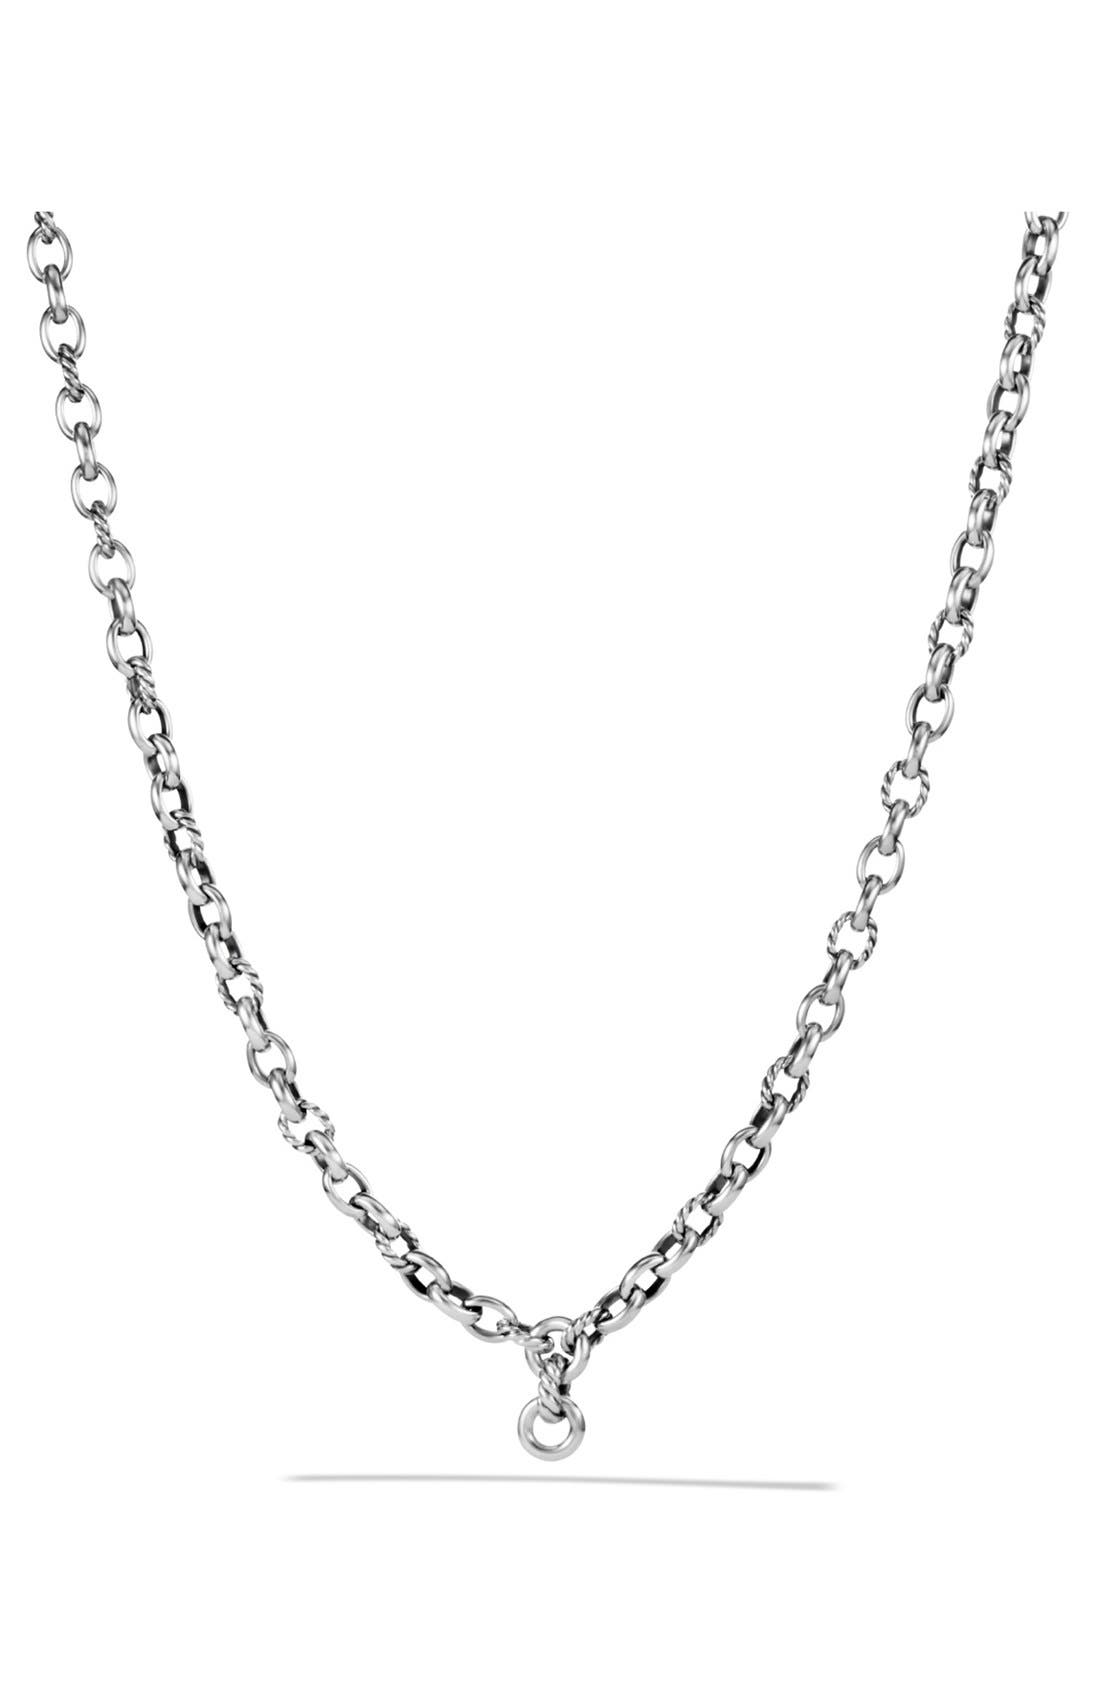 DAVID YURMAN Chain Oval Link Chain Necklace